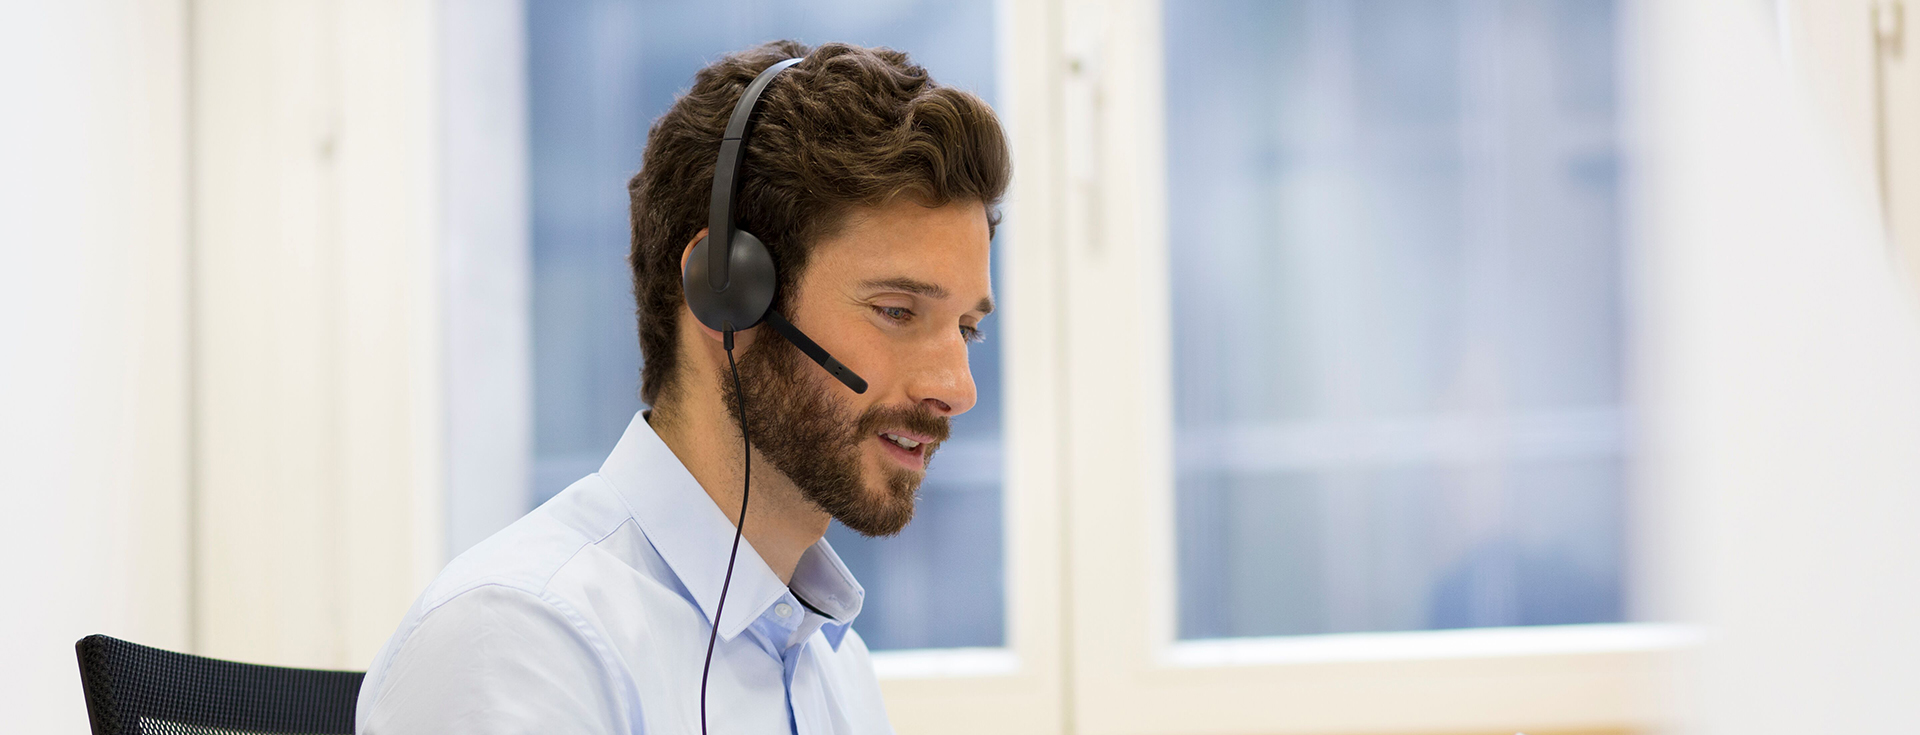 customer support person with headset